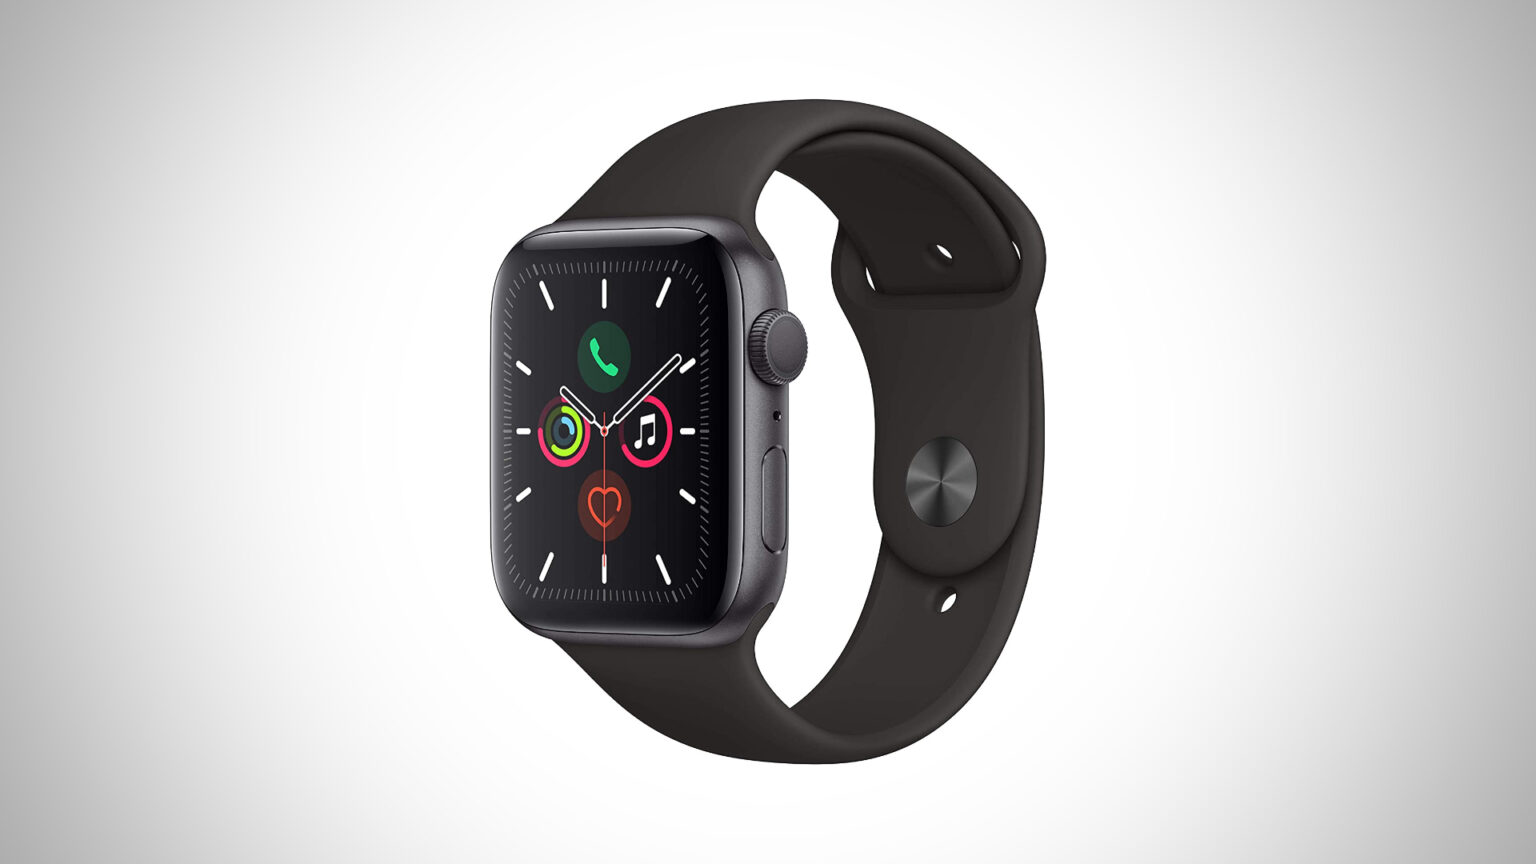 Get Apple Watch 5 at its lowest price yet